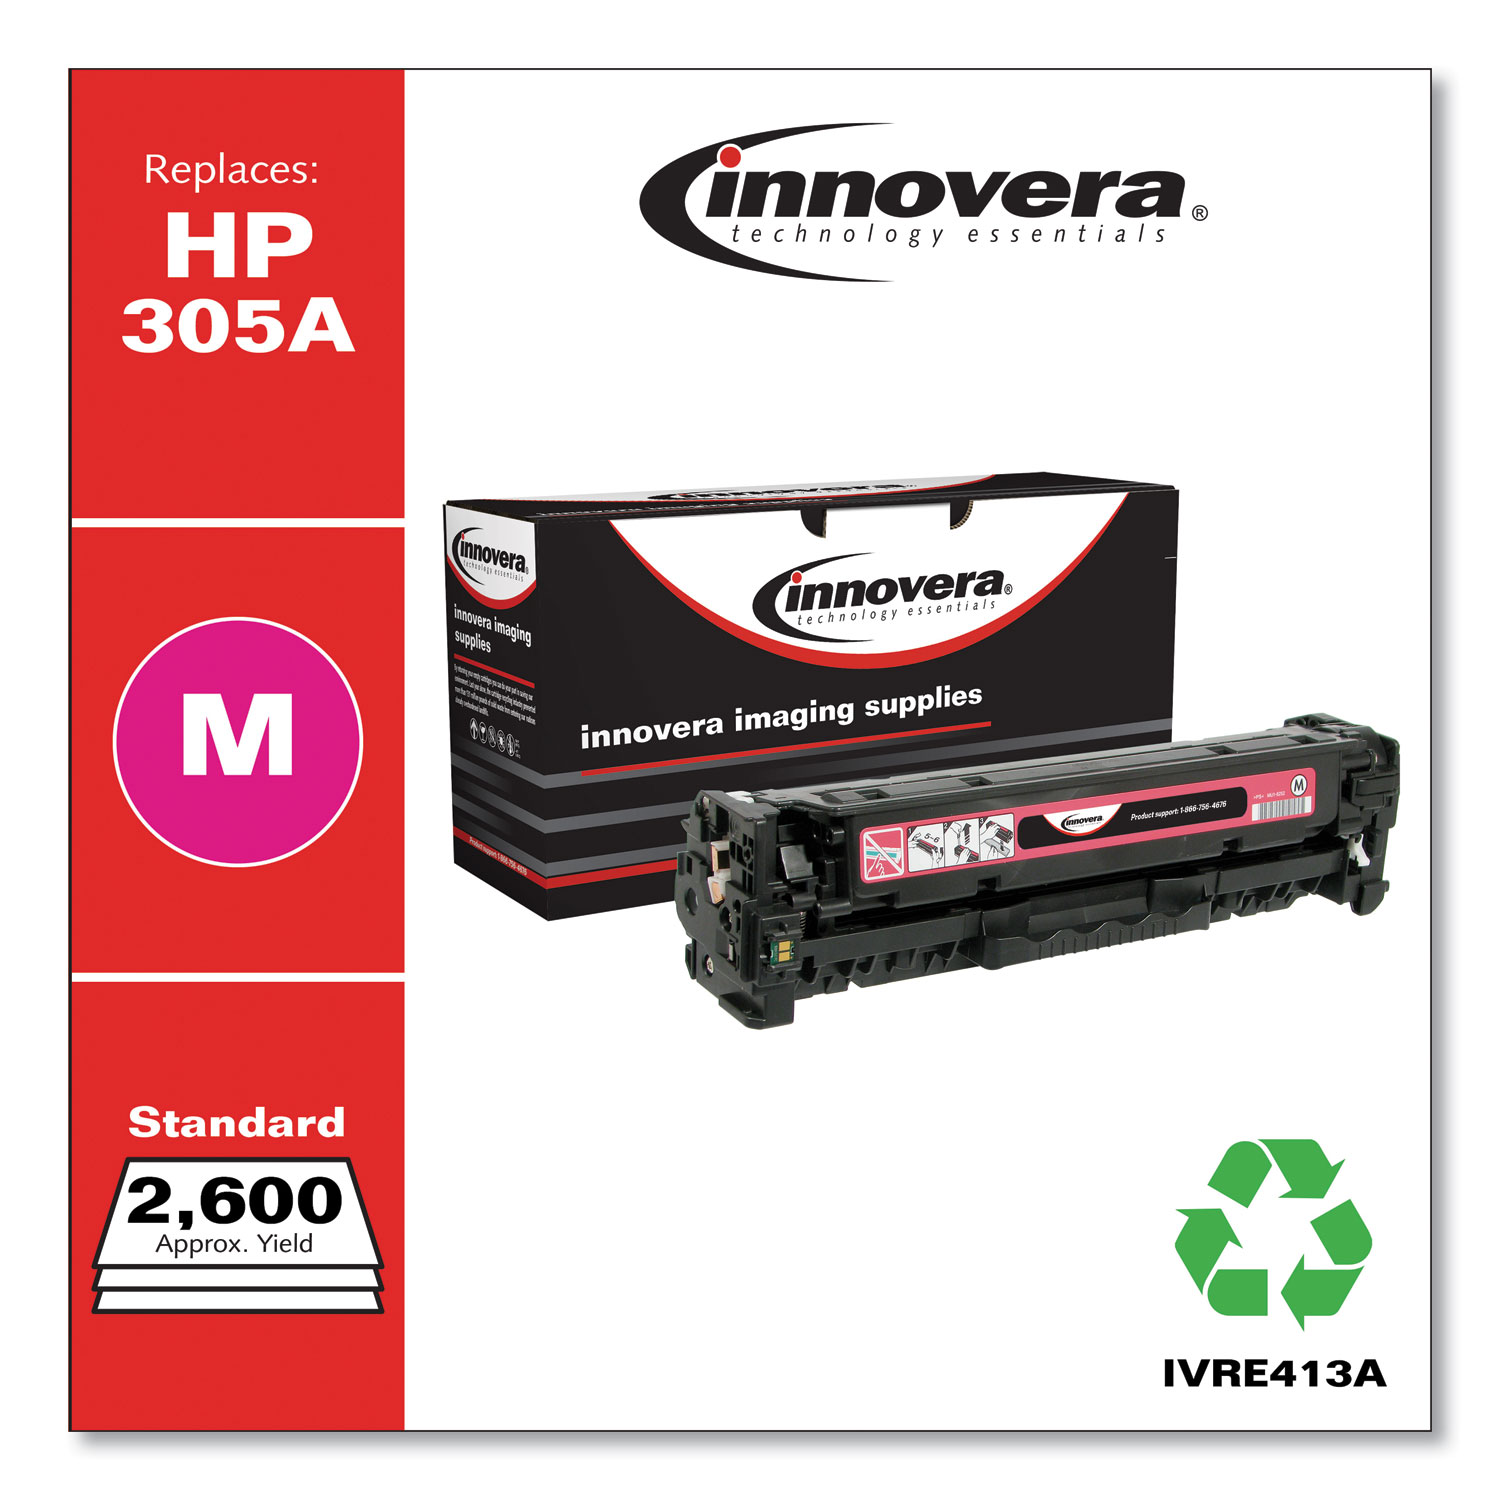 Remanufactured Magenta Toner, Replacement for HP 305A (CE413A), 2,600 Page-Yield IVRE413A